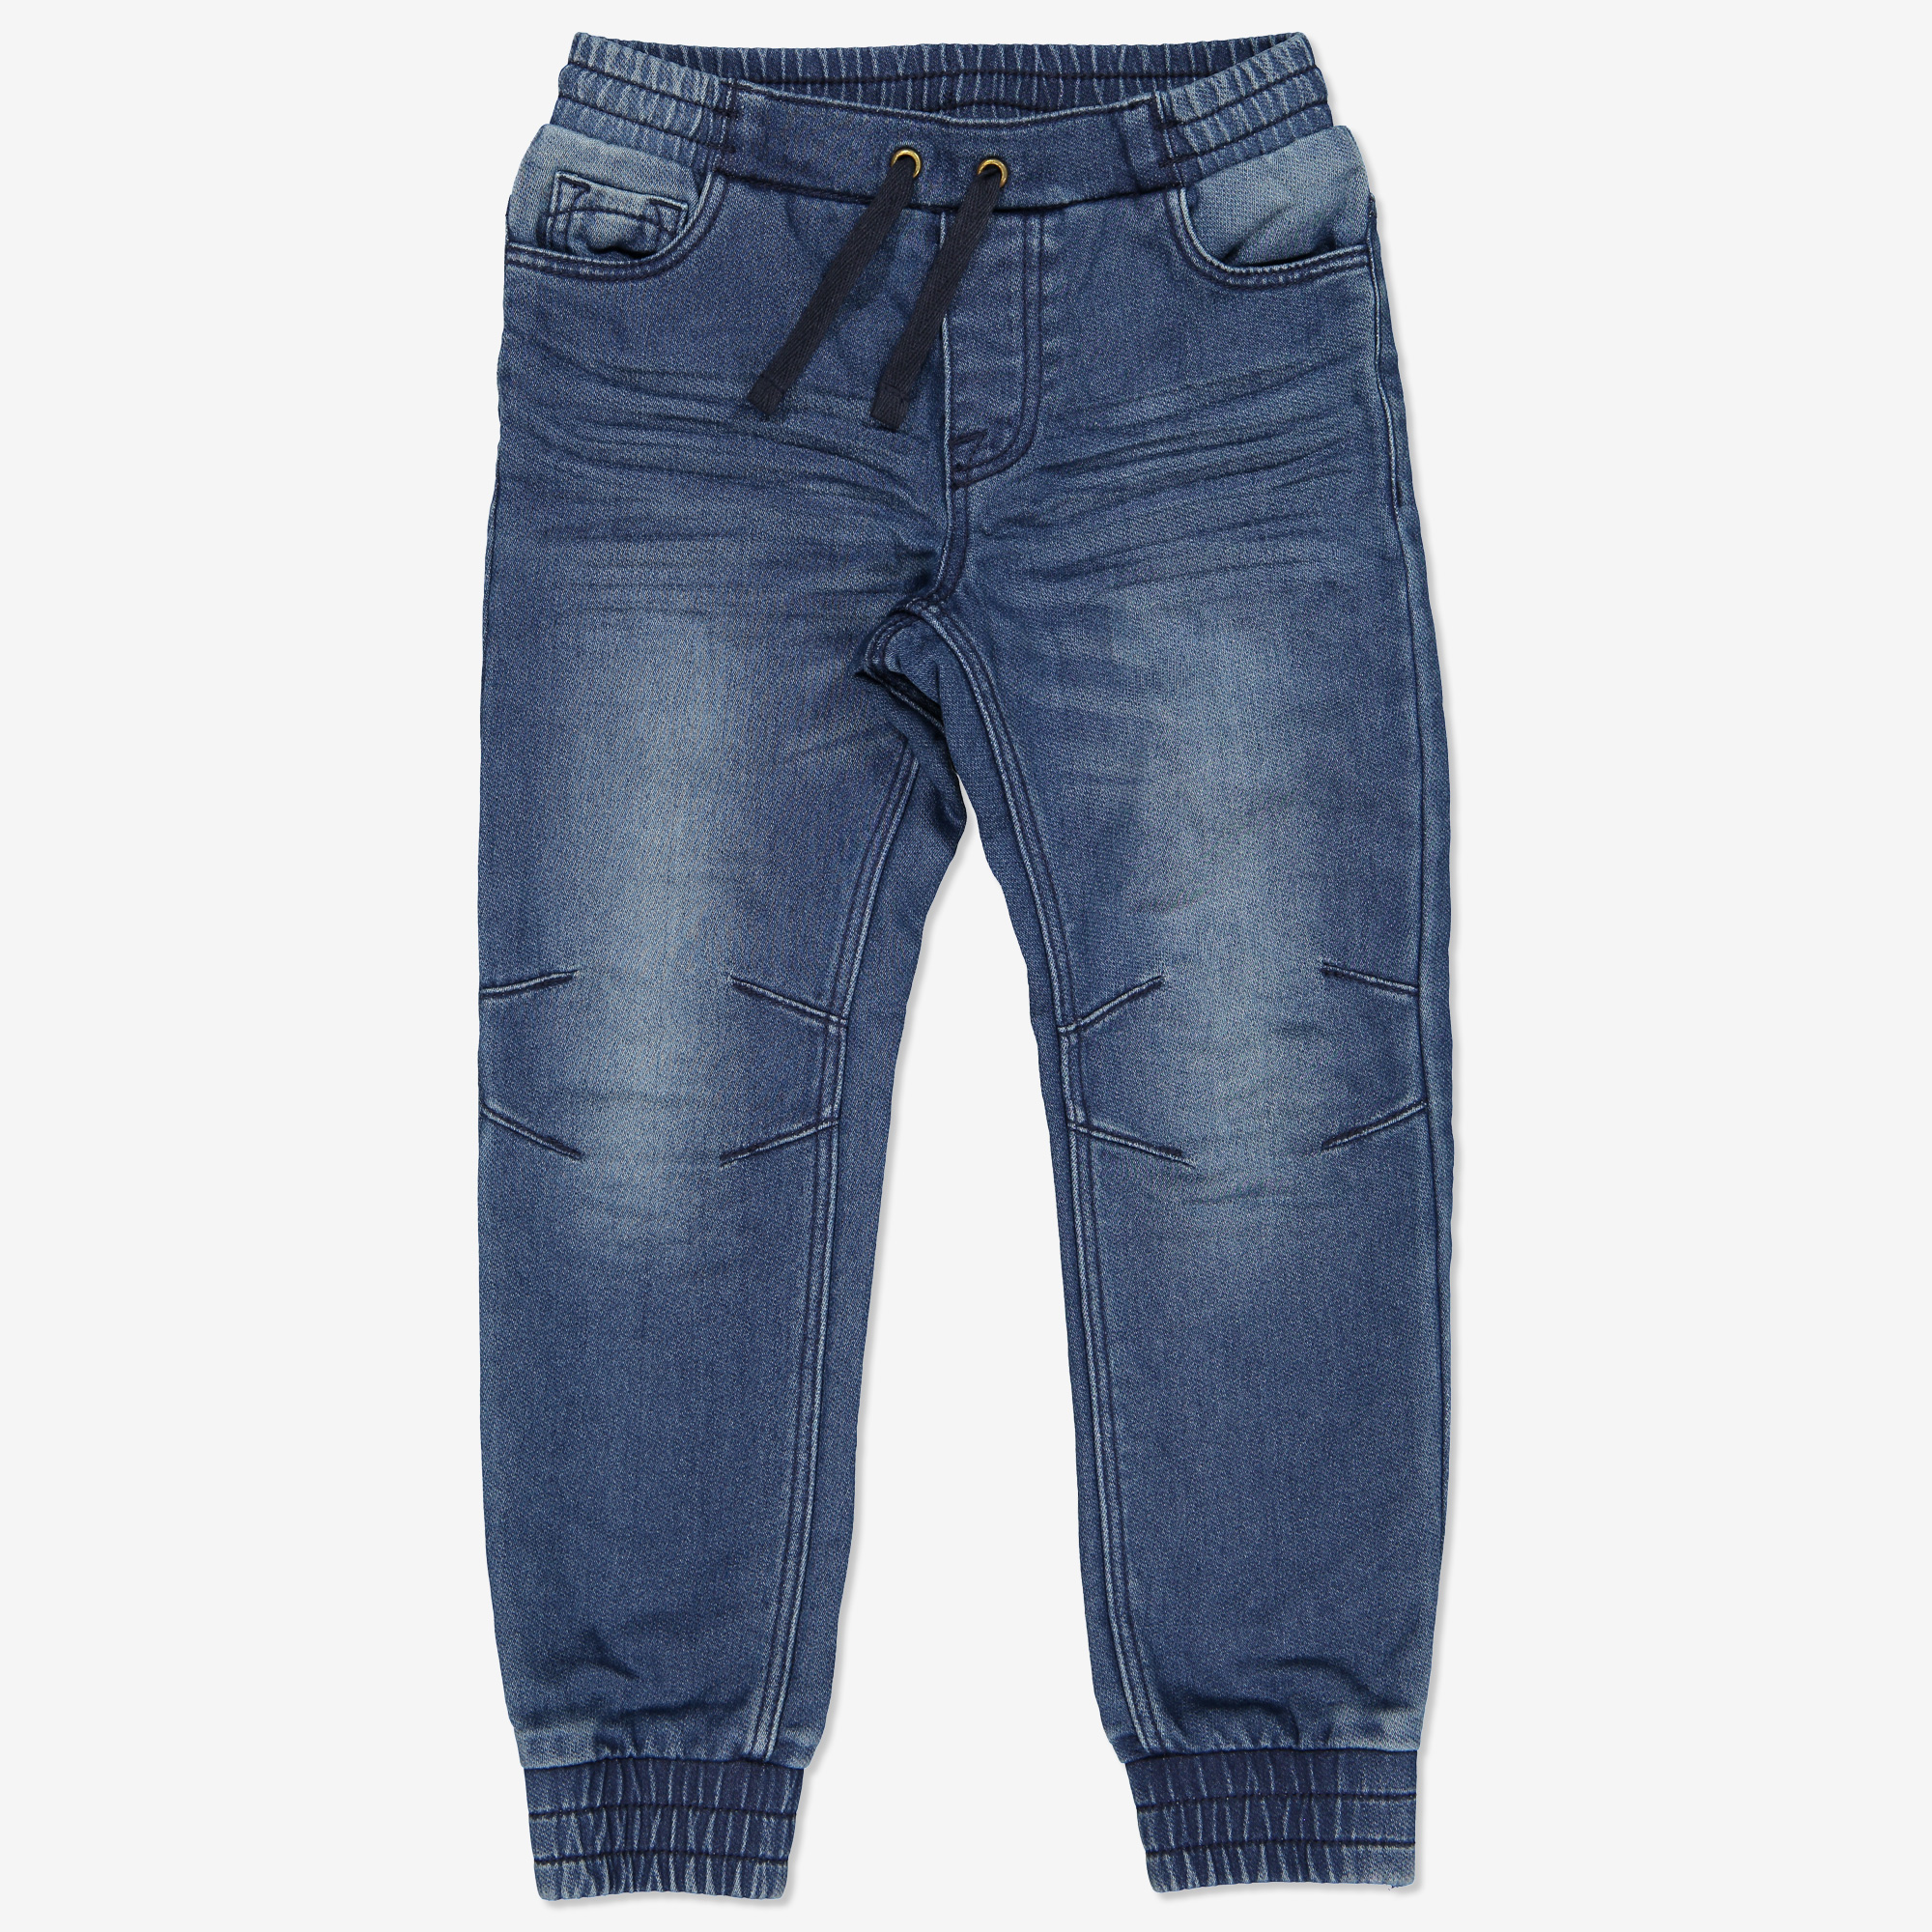 Bukse denim